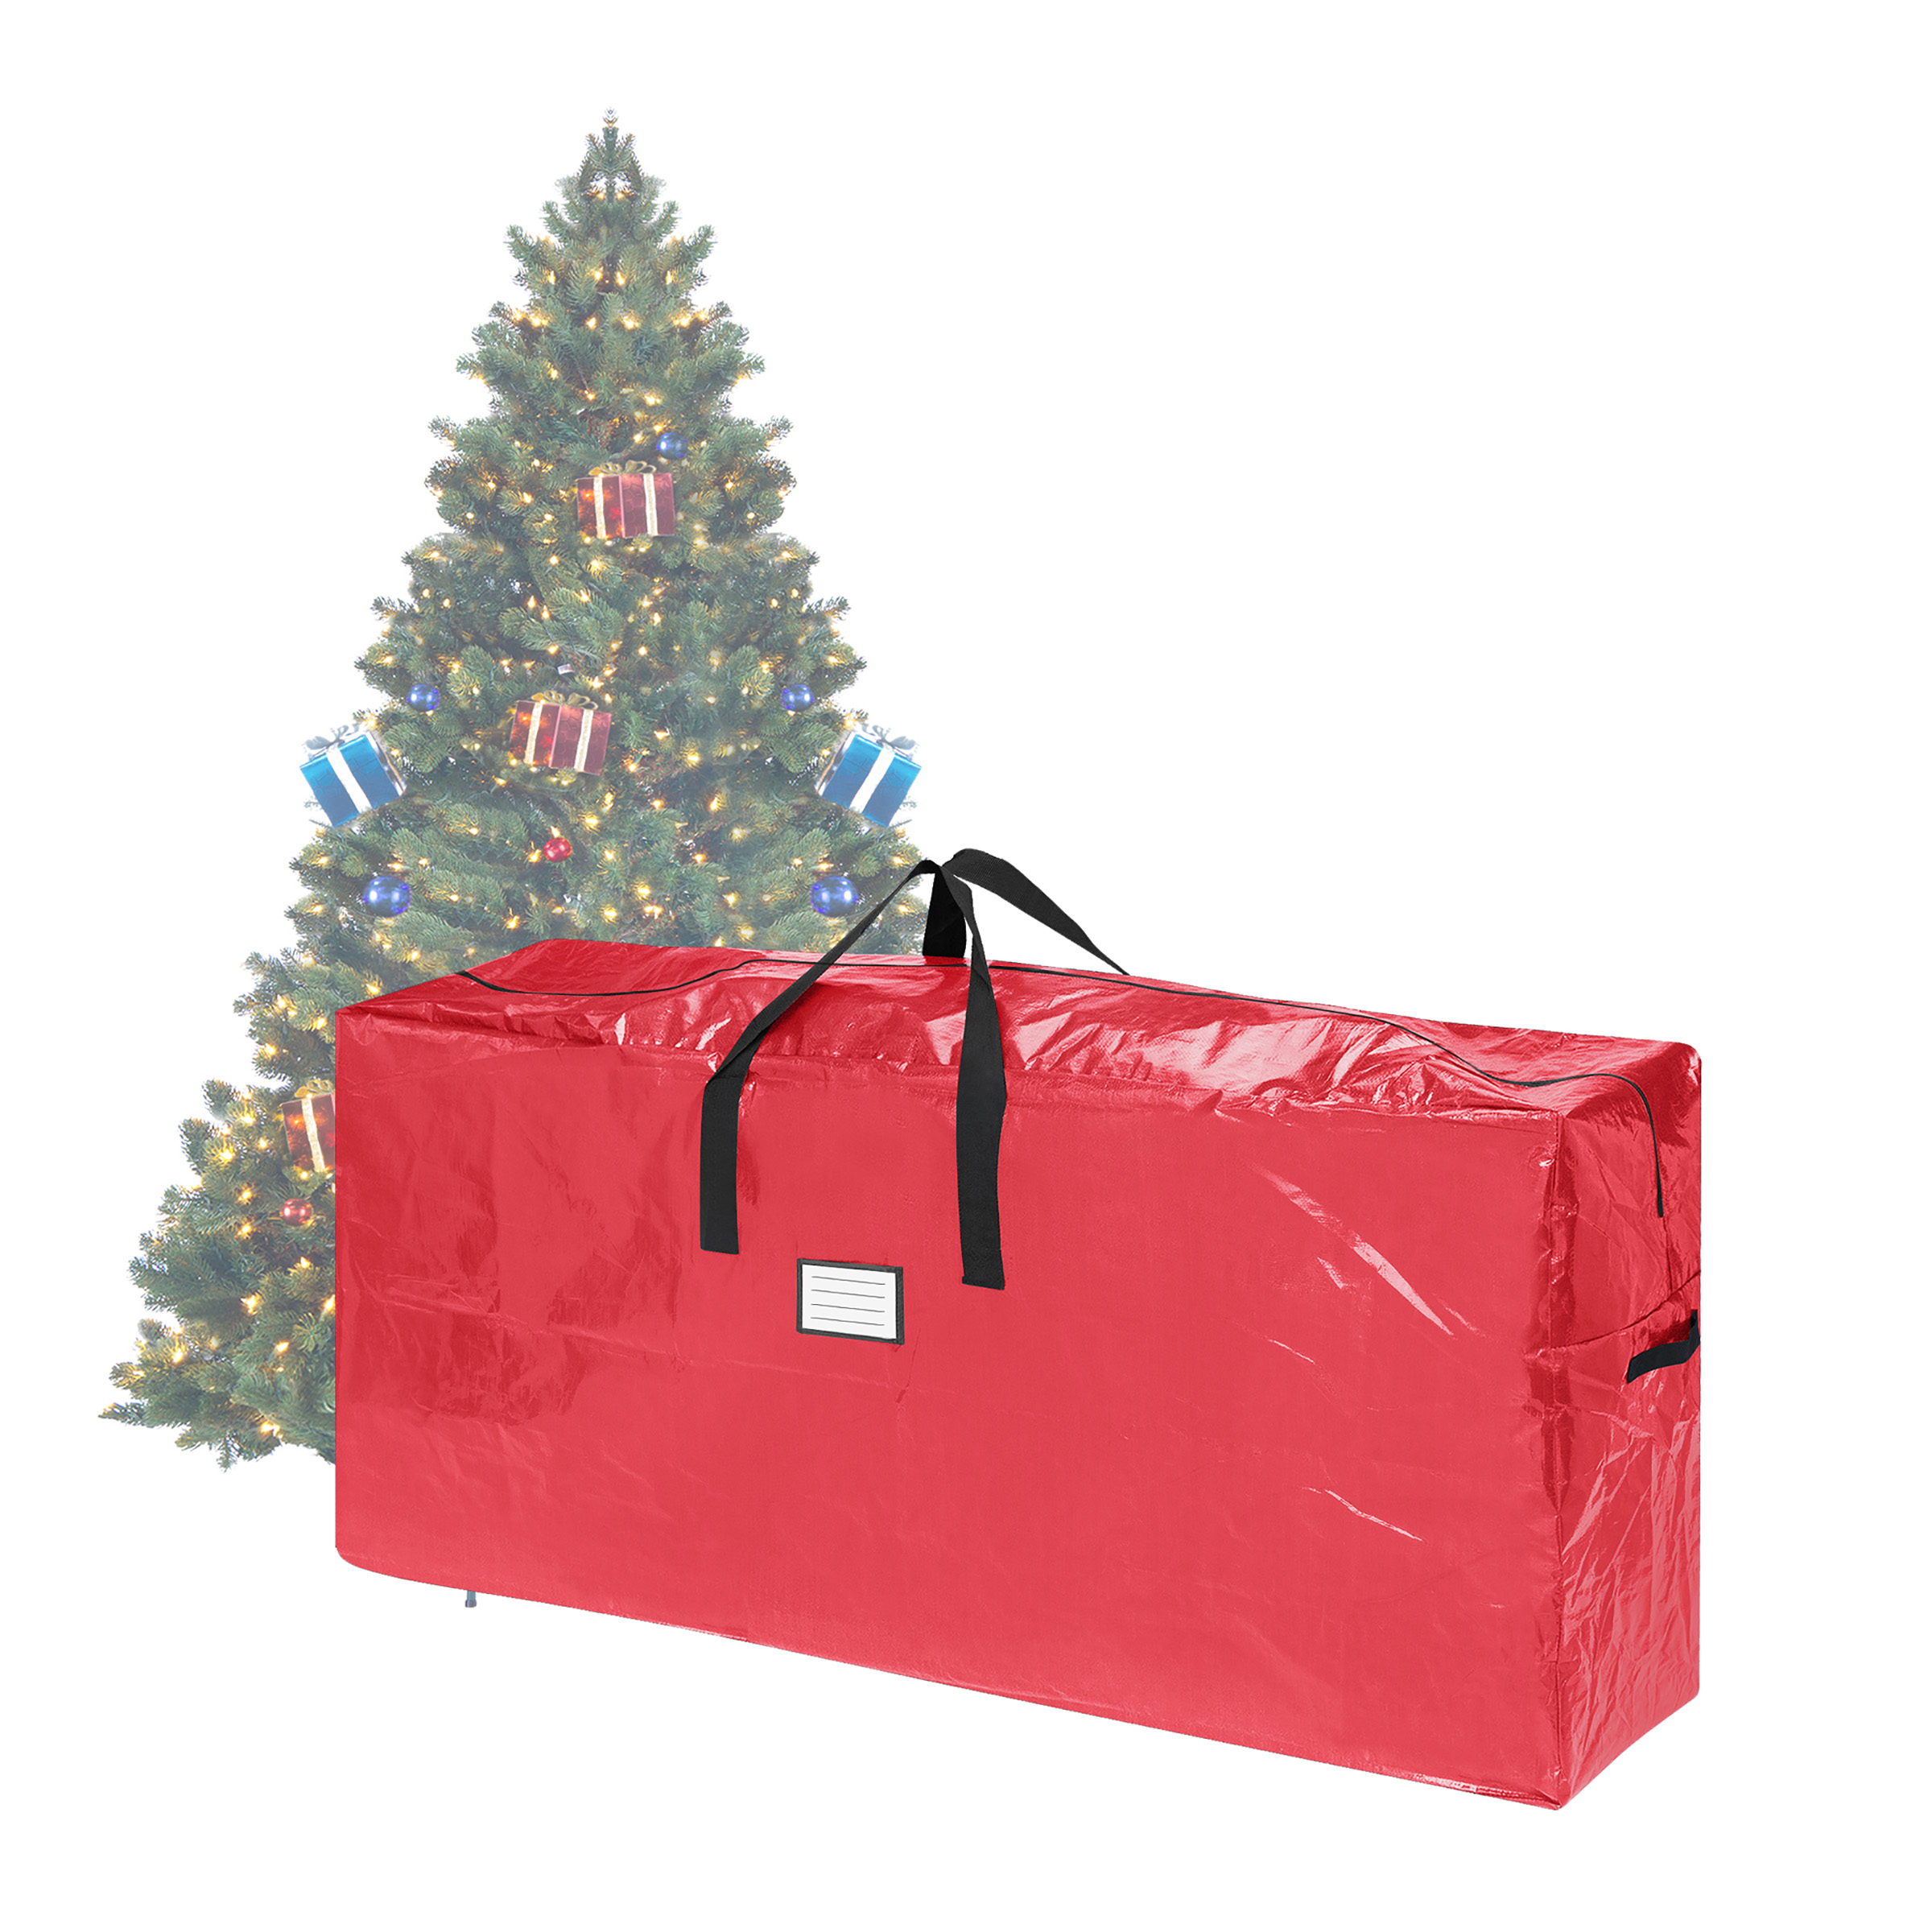 Elf Stor Premium Red Christmas Tree Bag Holiday Extra Tall For up to 9 Ft Tree